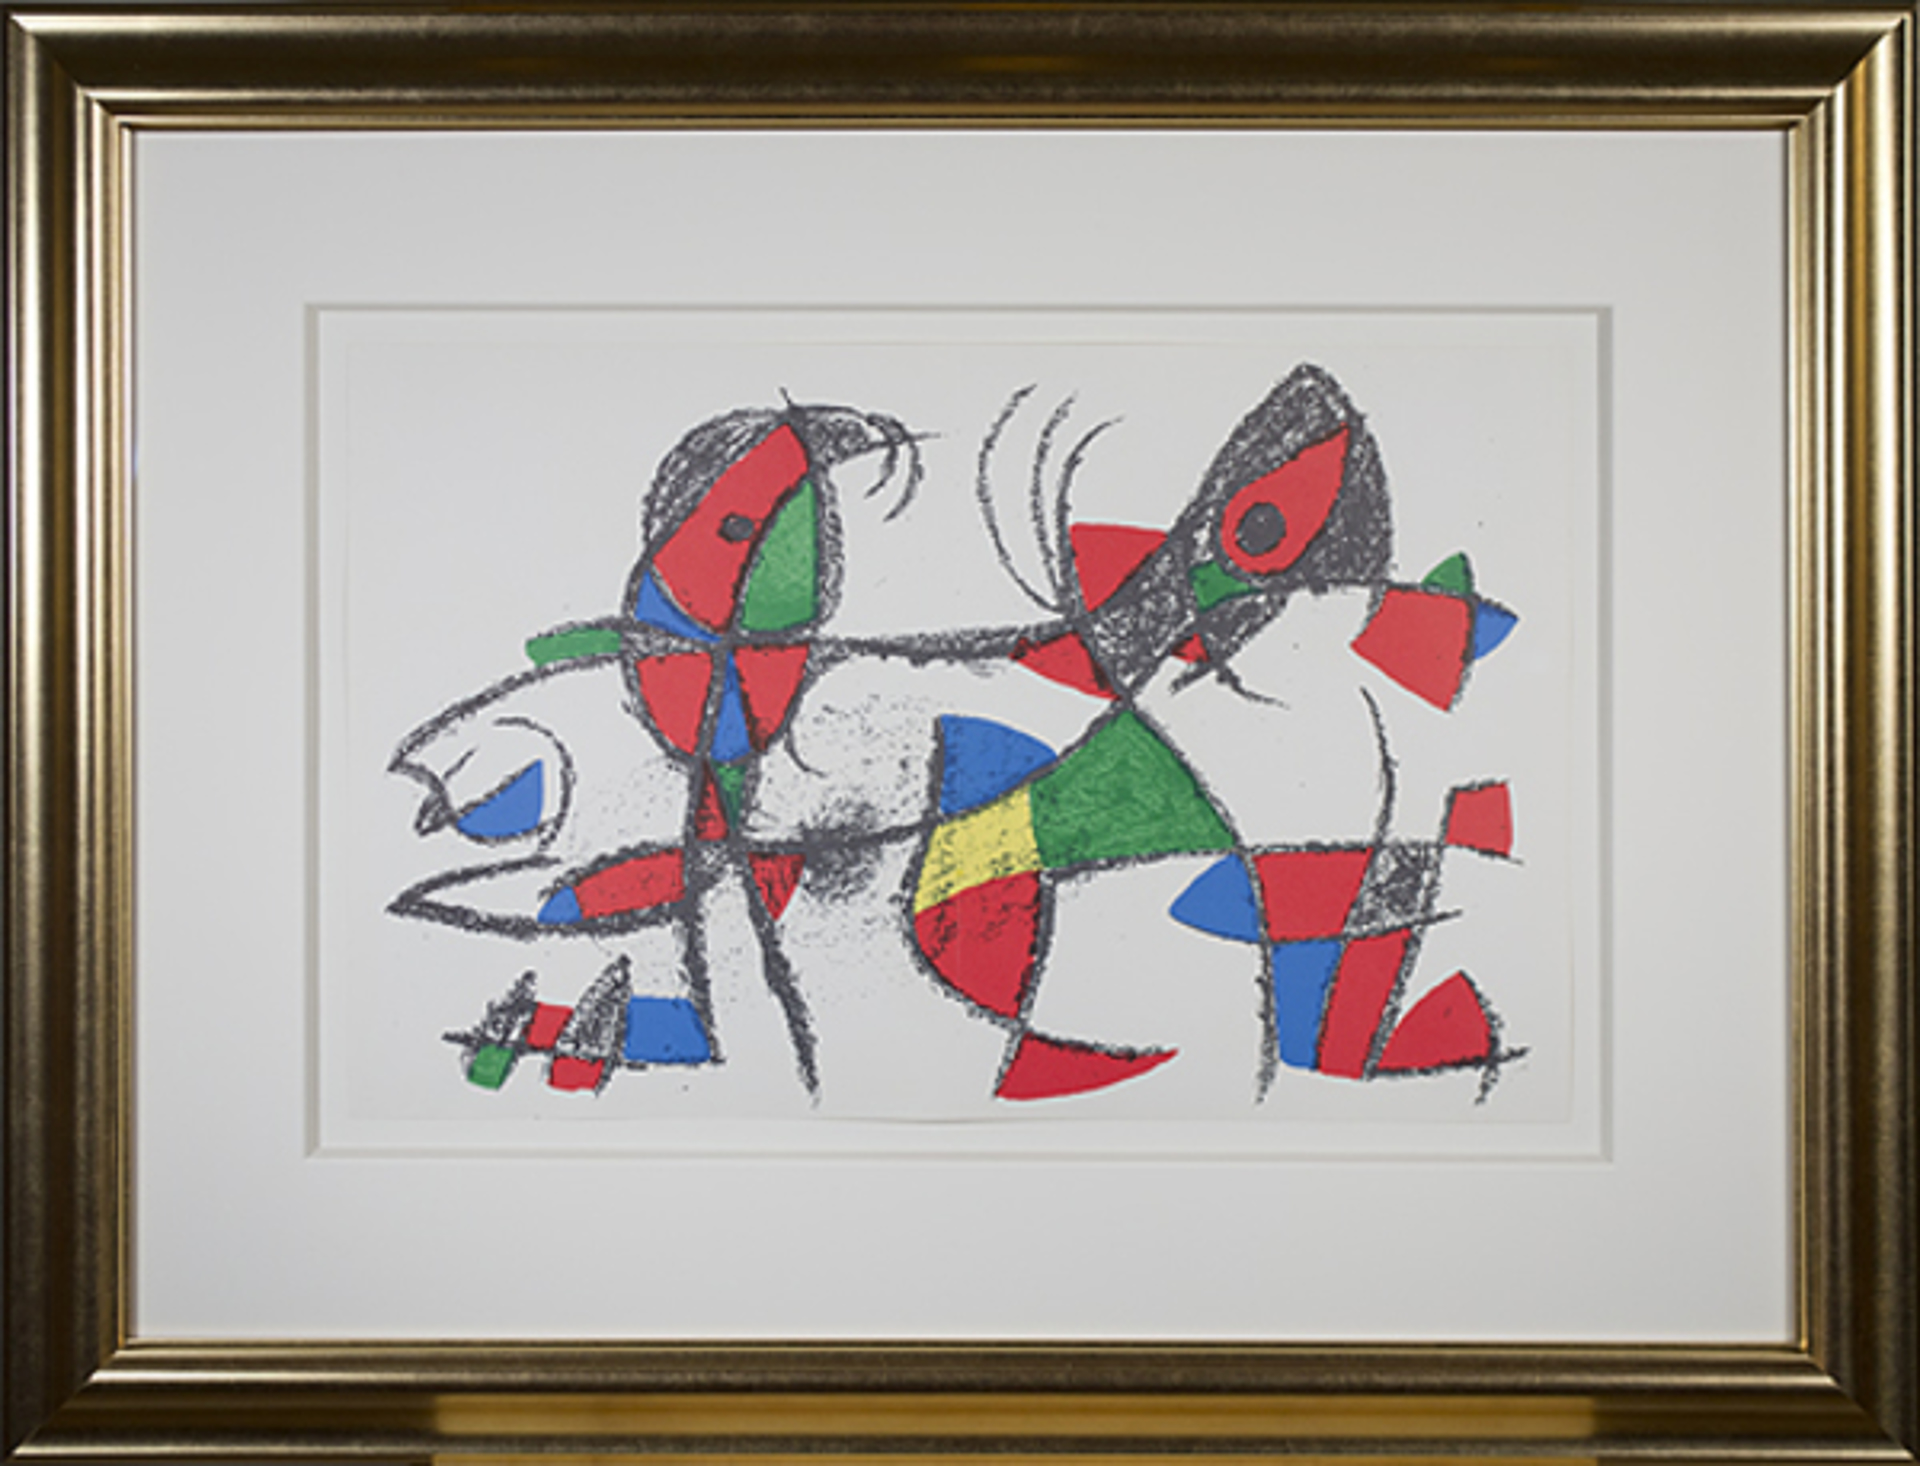 """Original Lithograph X from """"Miro Lithographs II, Maeght Publisher"""" by Joan Miro"""